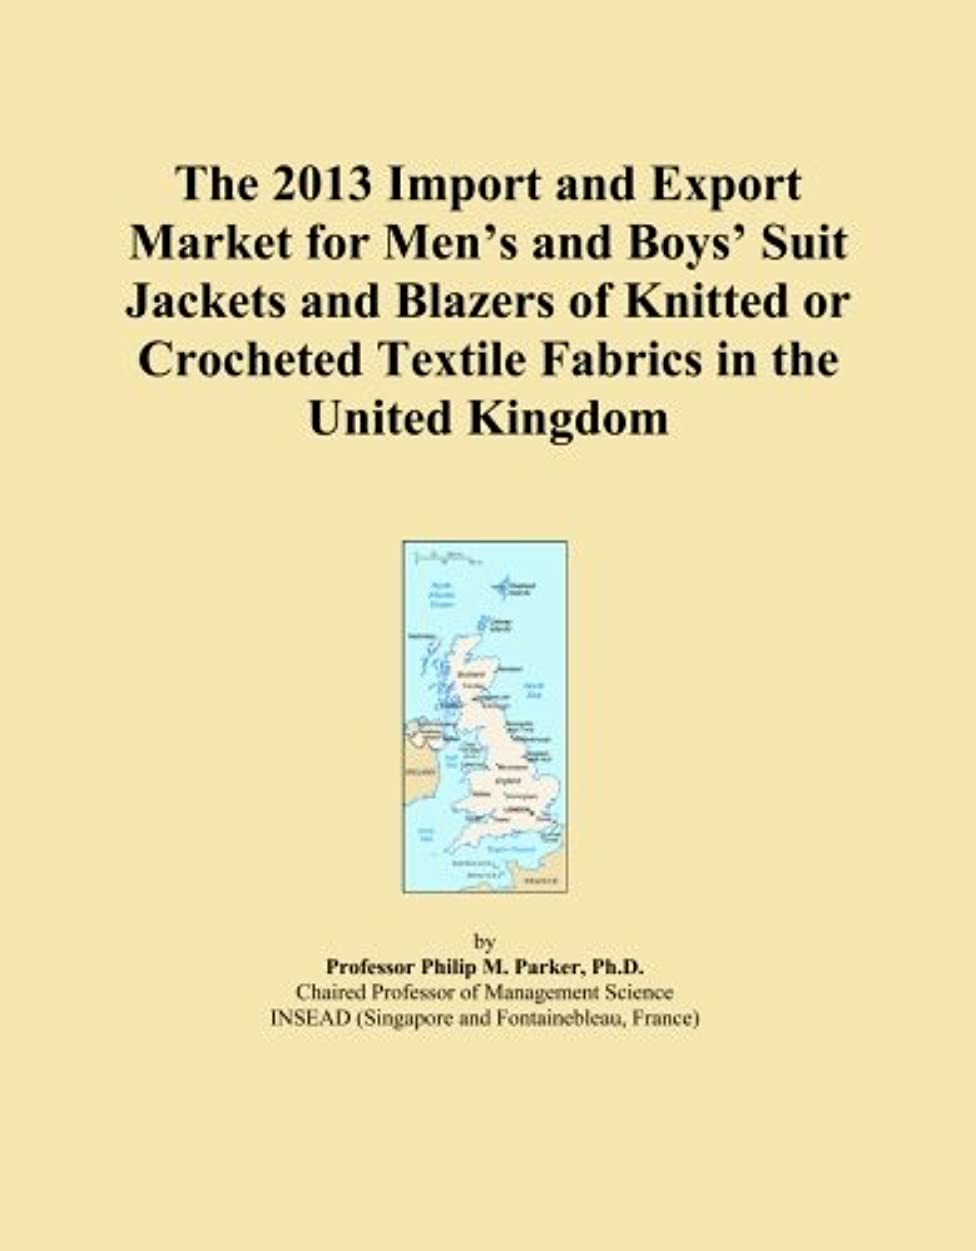 The 2013 Import and Export Market for Men's and Boys' Suit Jackets and Blazers of Knitted or Crocheted Textile Fabrics in the United Kingdom